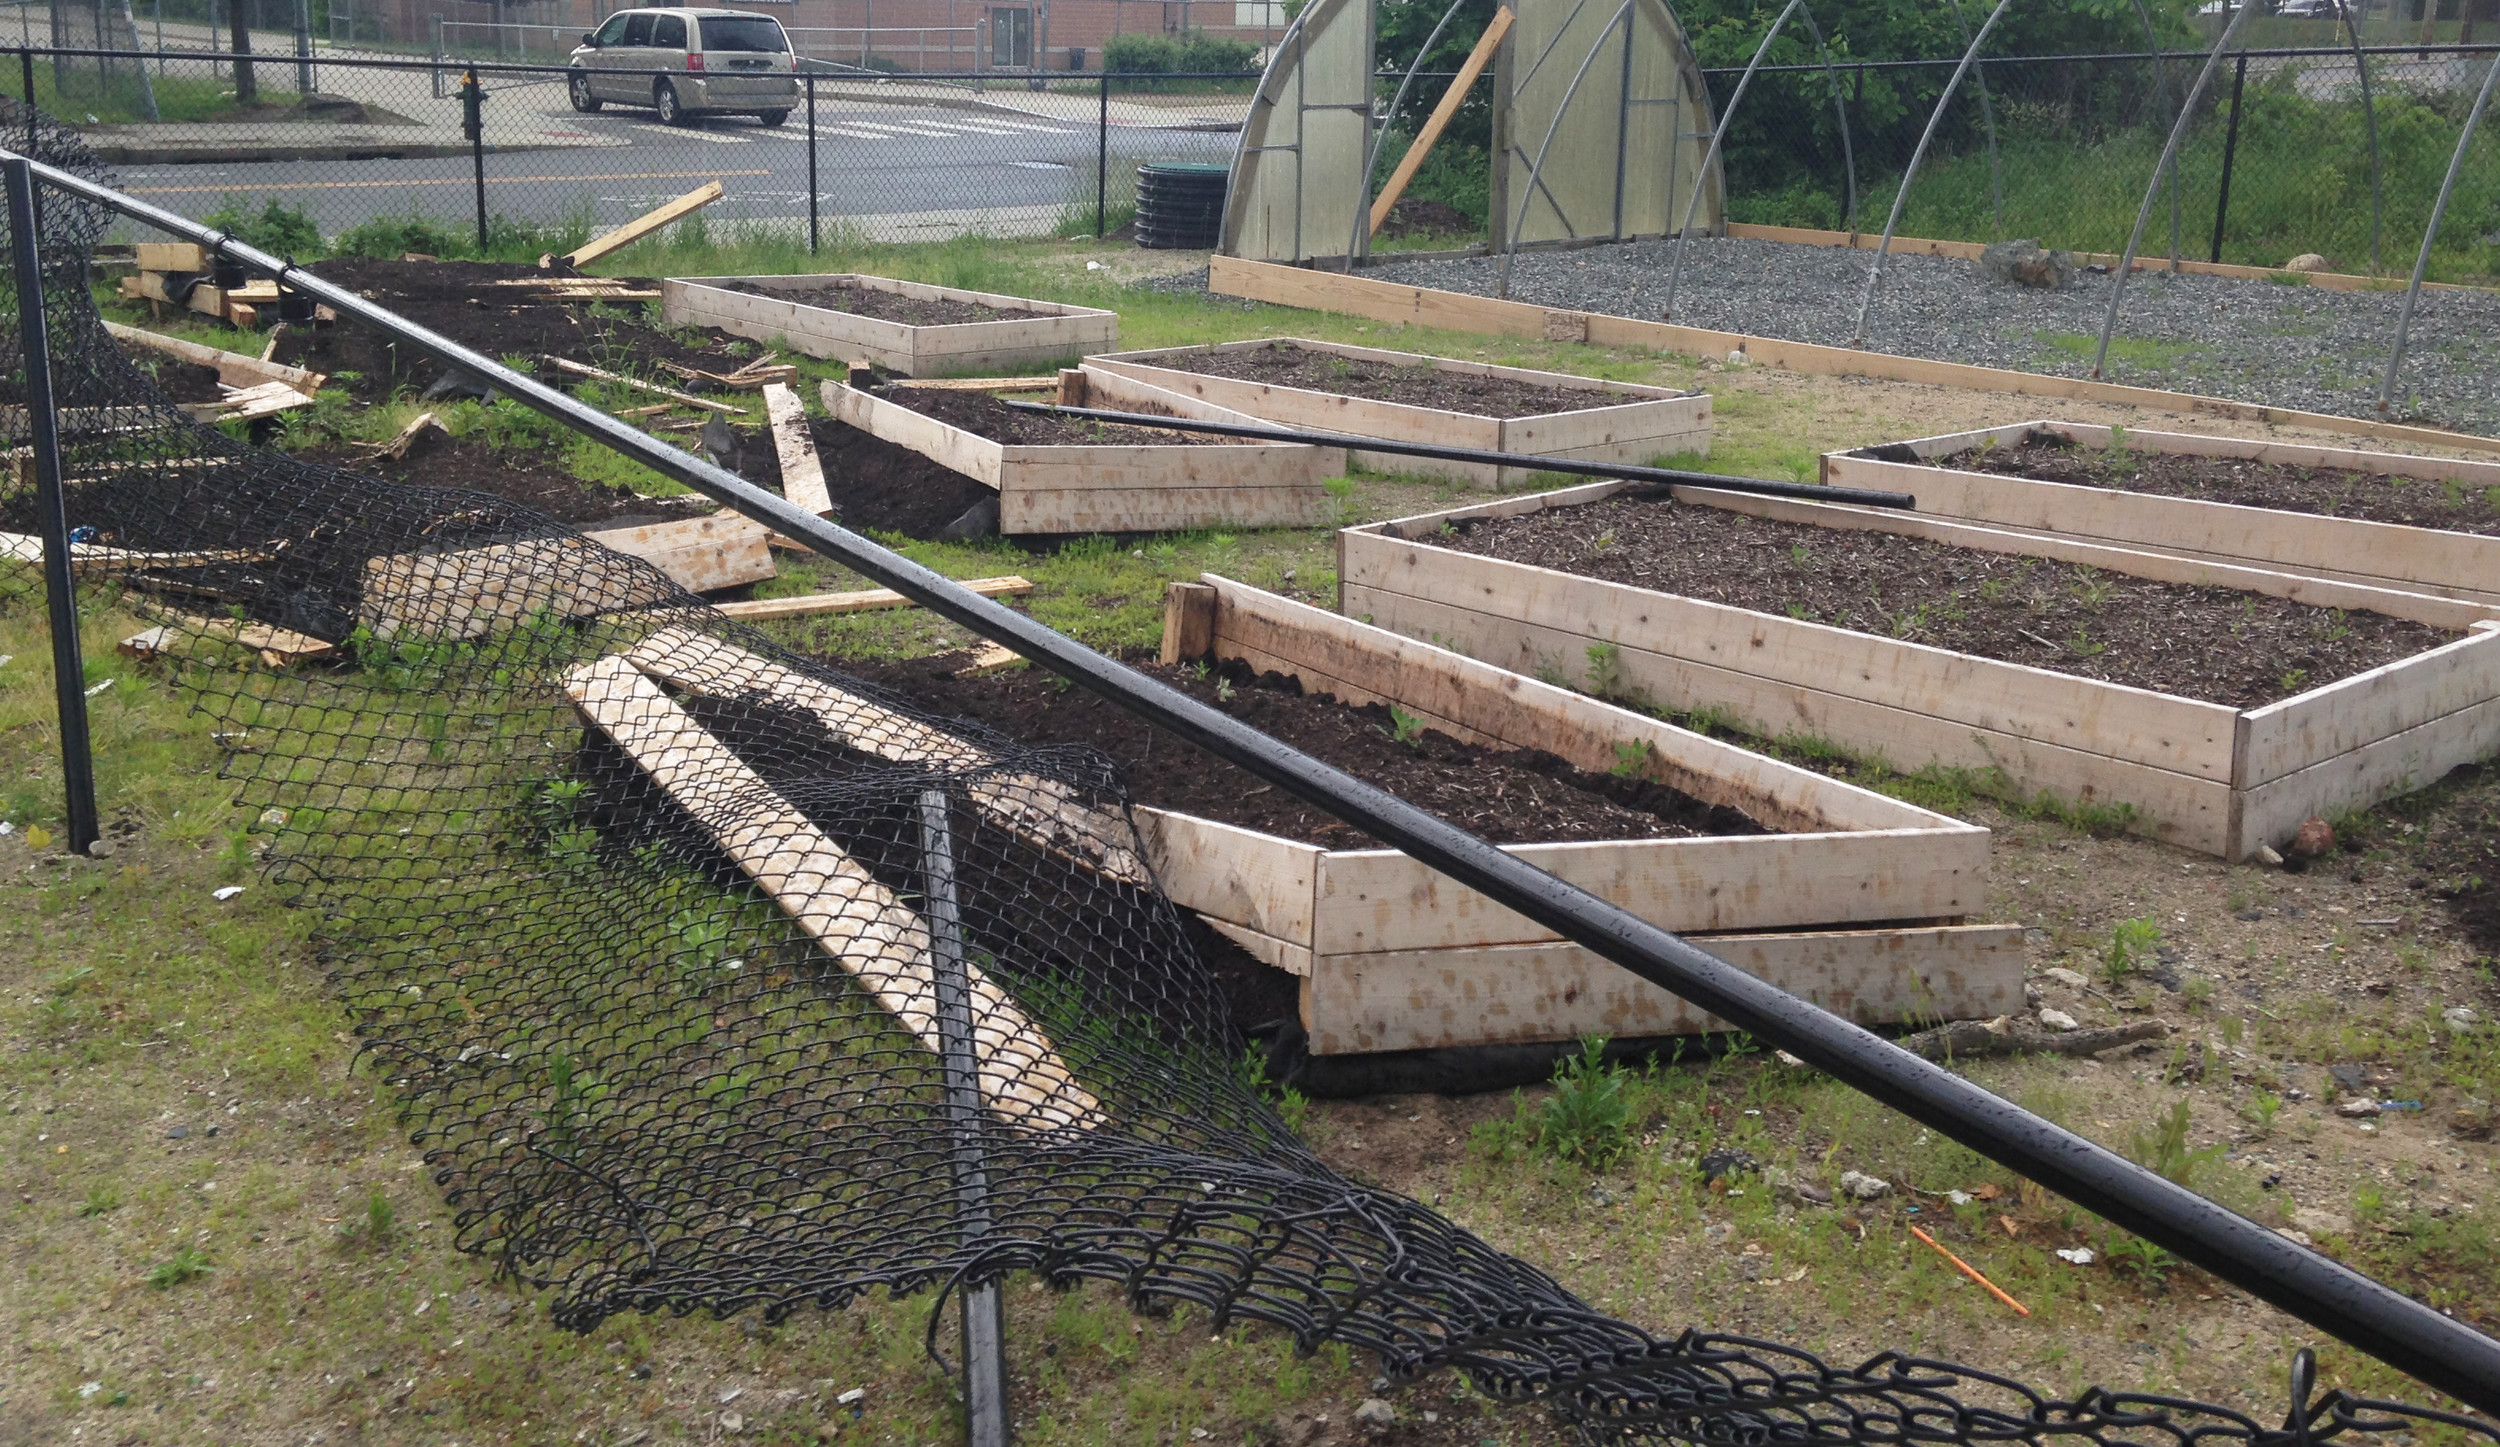 A vandal drove a truck through the fence at the new urban farming site built by the African Alliance of Rhode Island, destroying 10 of 17 raised beds, a crime story unreported by the local news media.